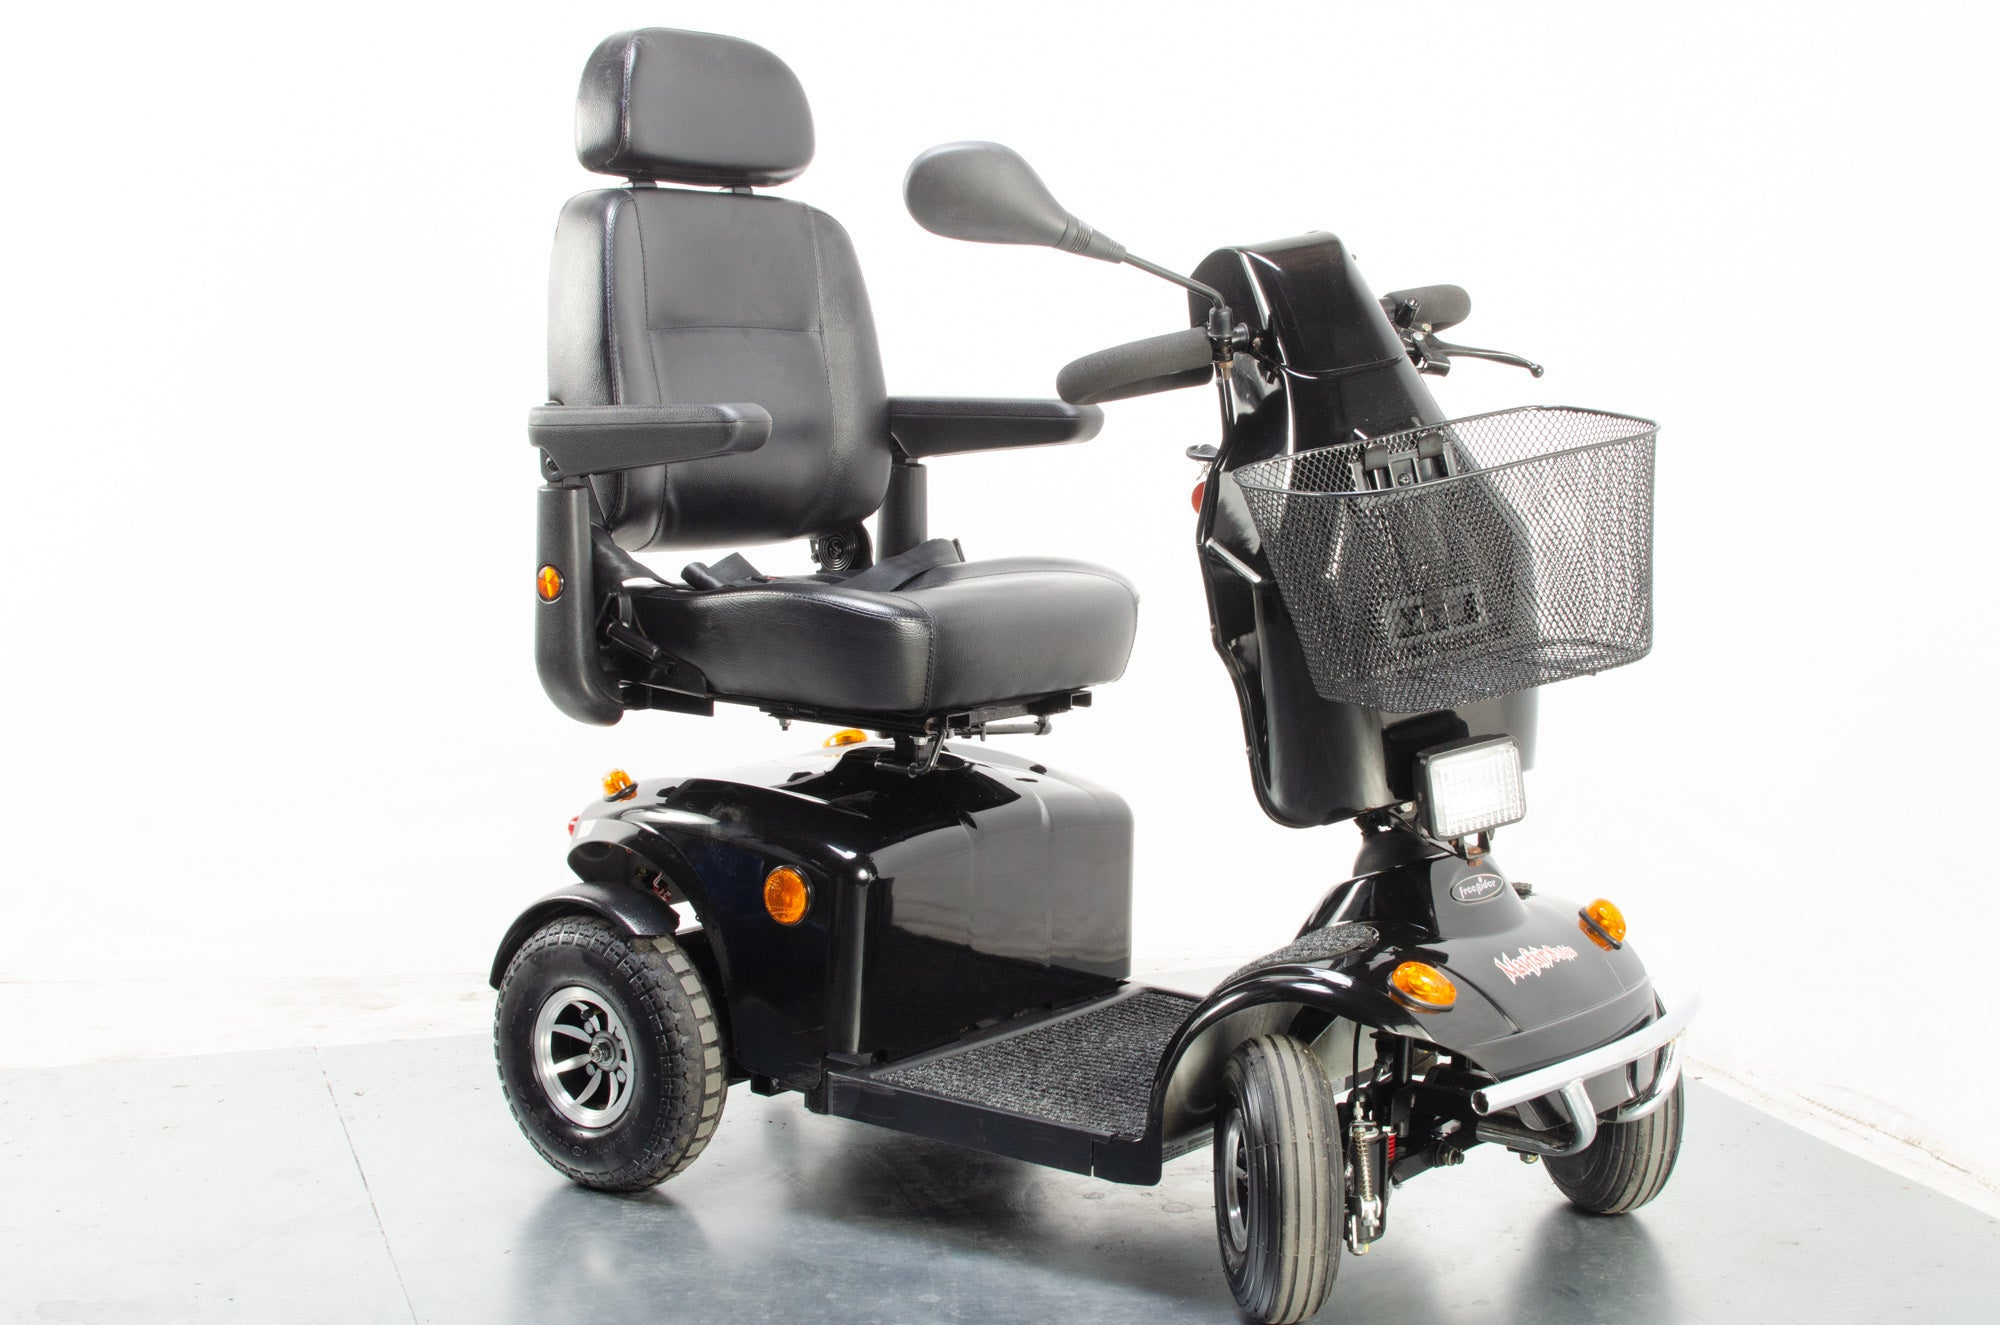 Freerider Mayfair Deluxe Used Electric Mobility Scooter 8mph Suspension Road Pneumatic